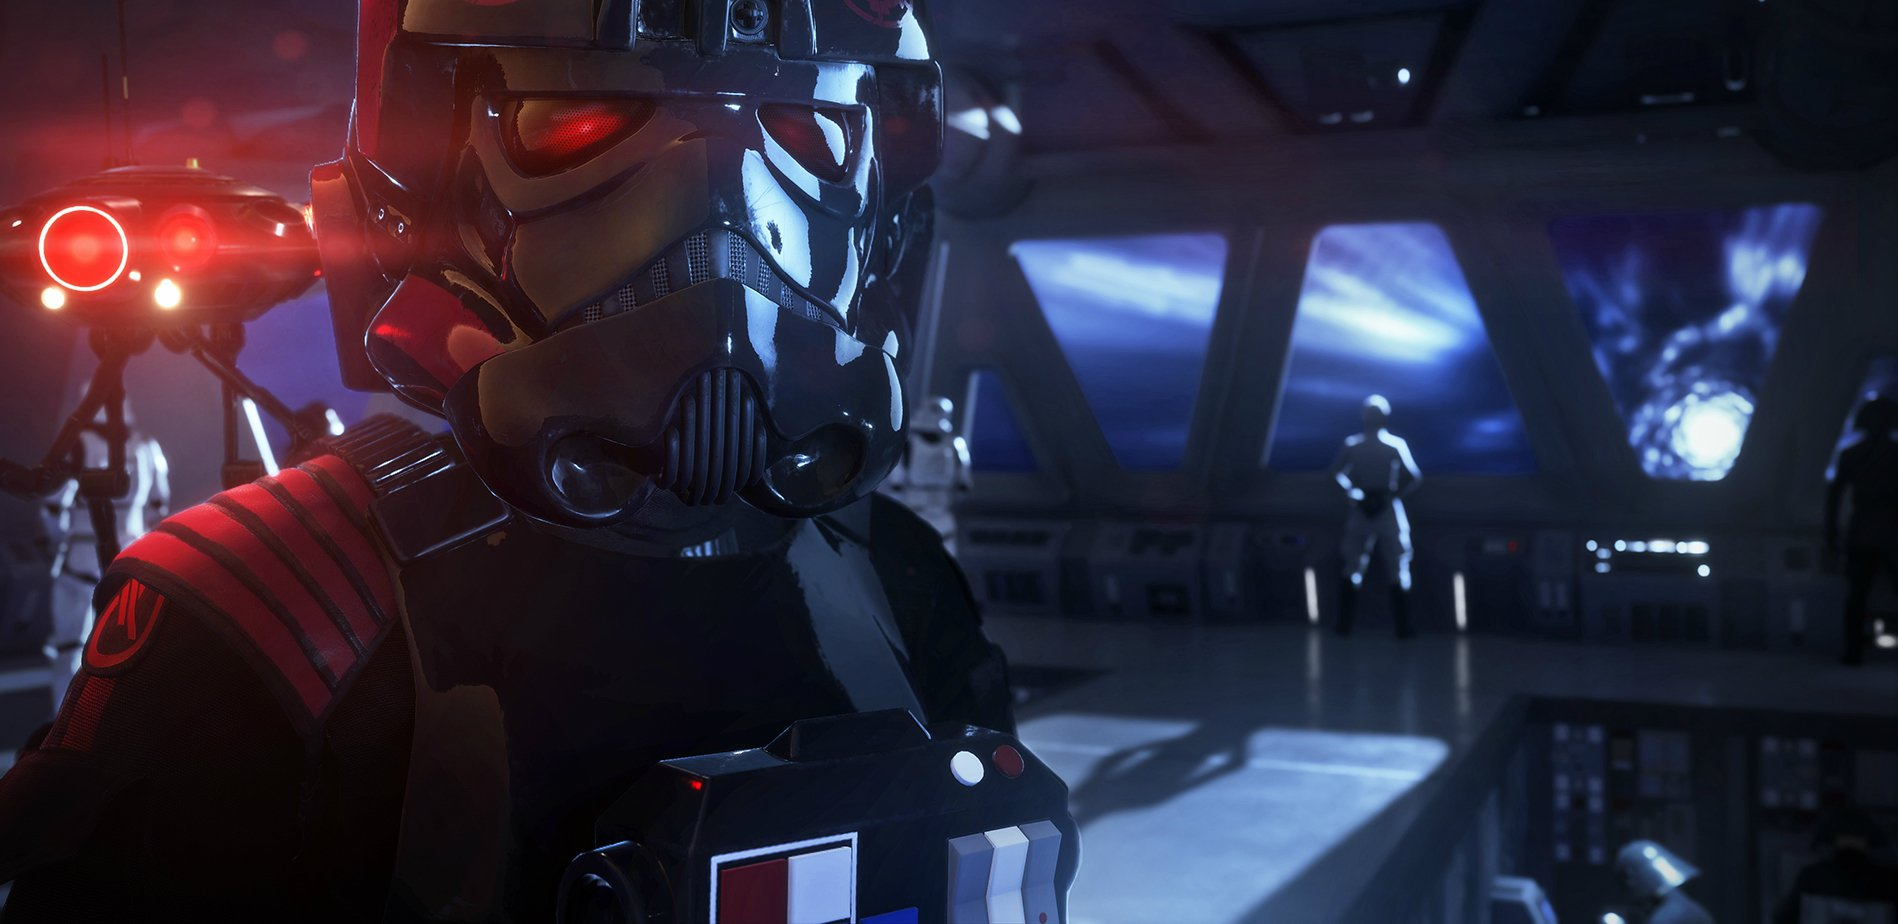 Star Wars Battlefront II's early access period is set screenshot